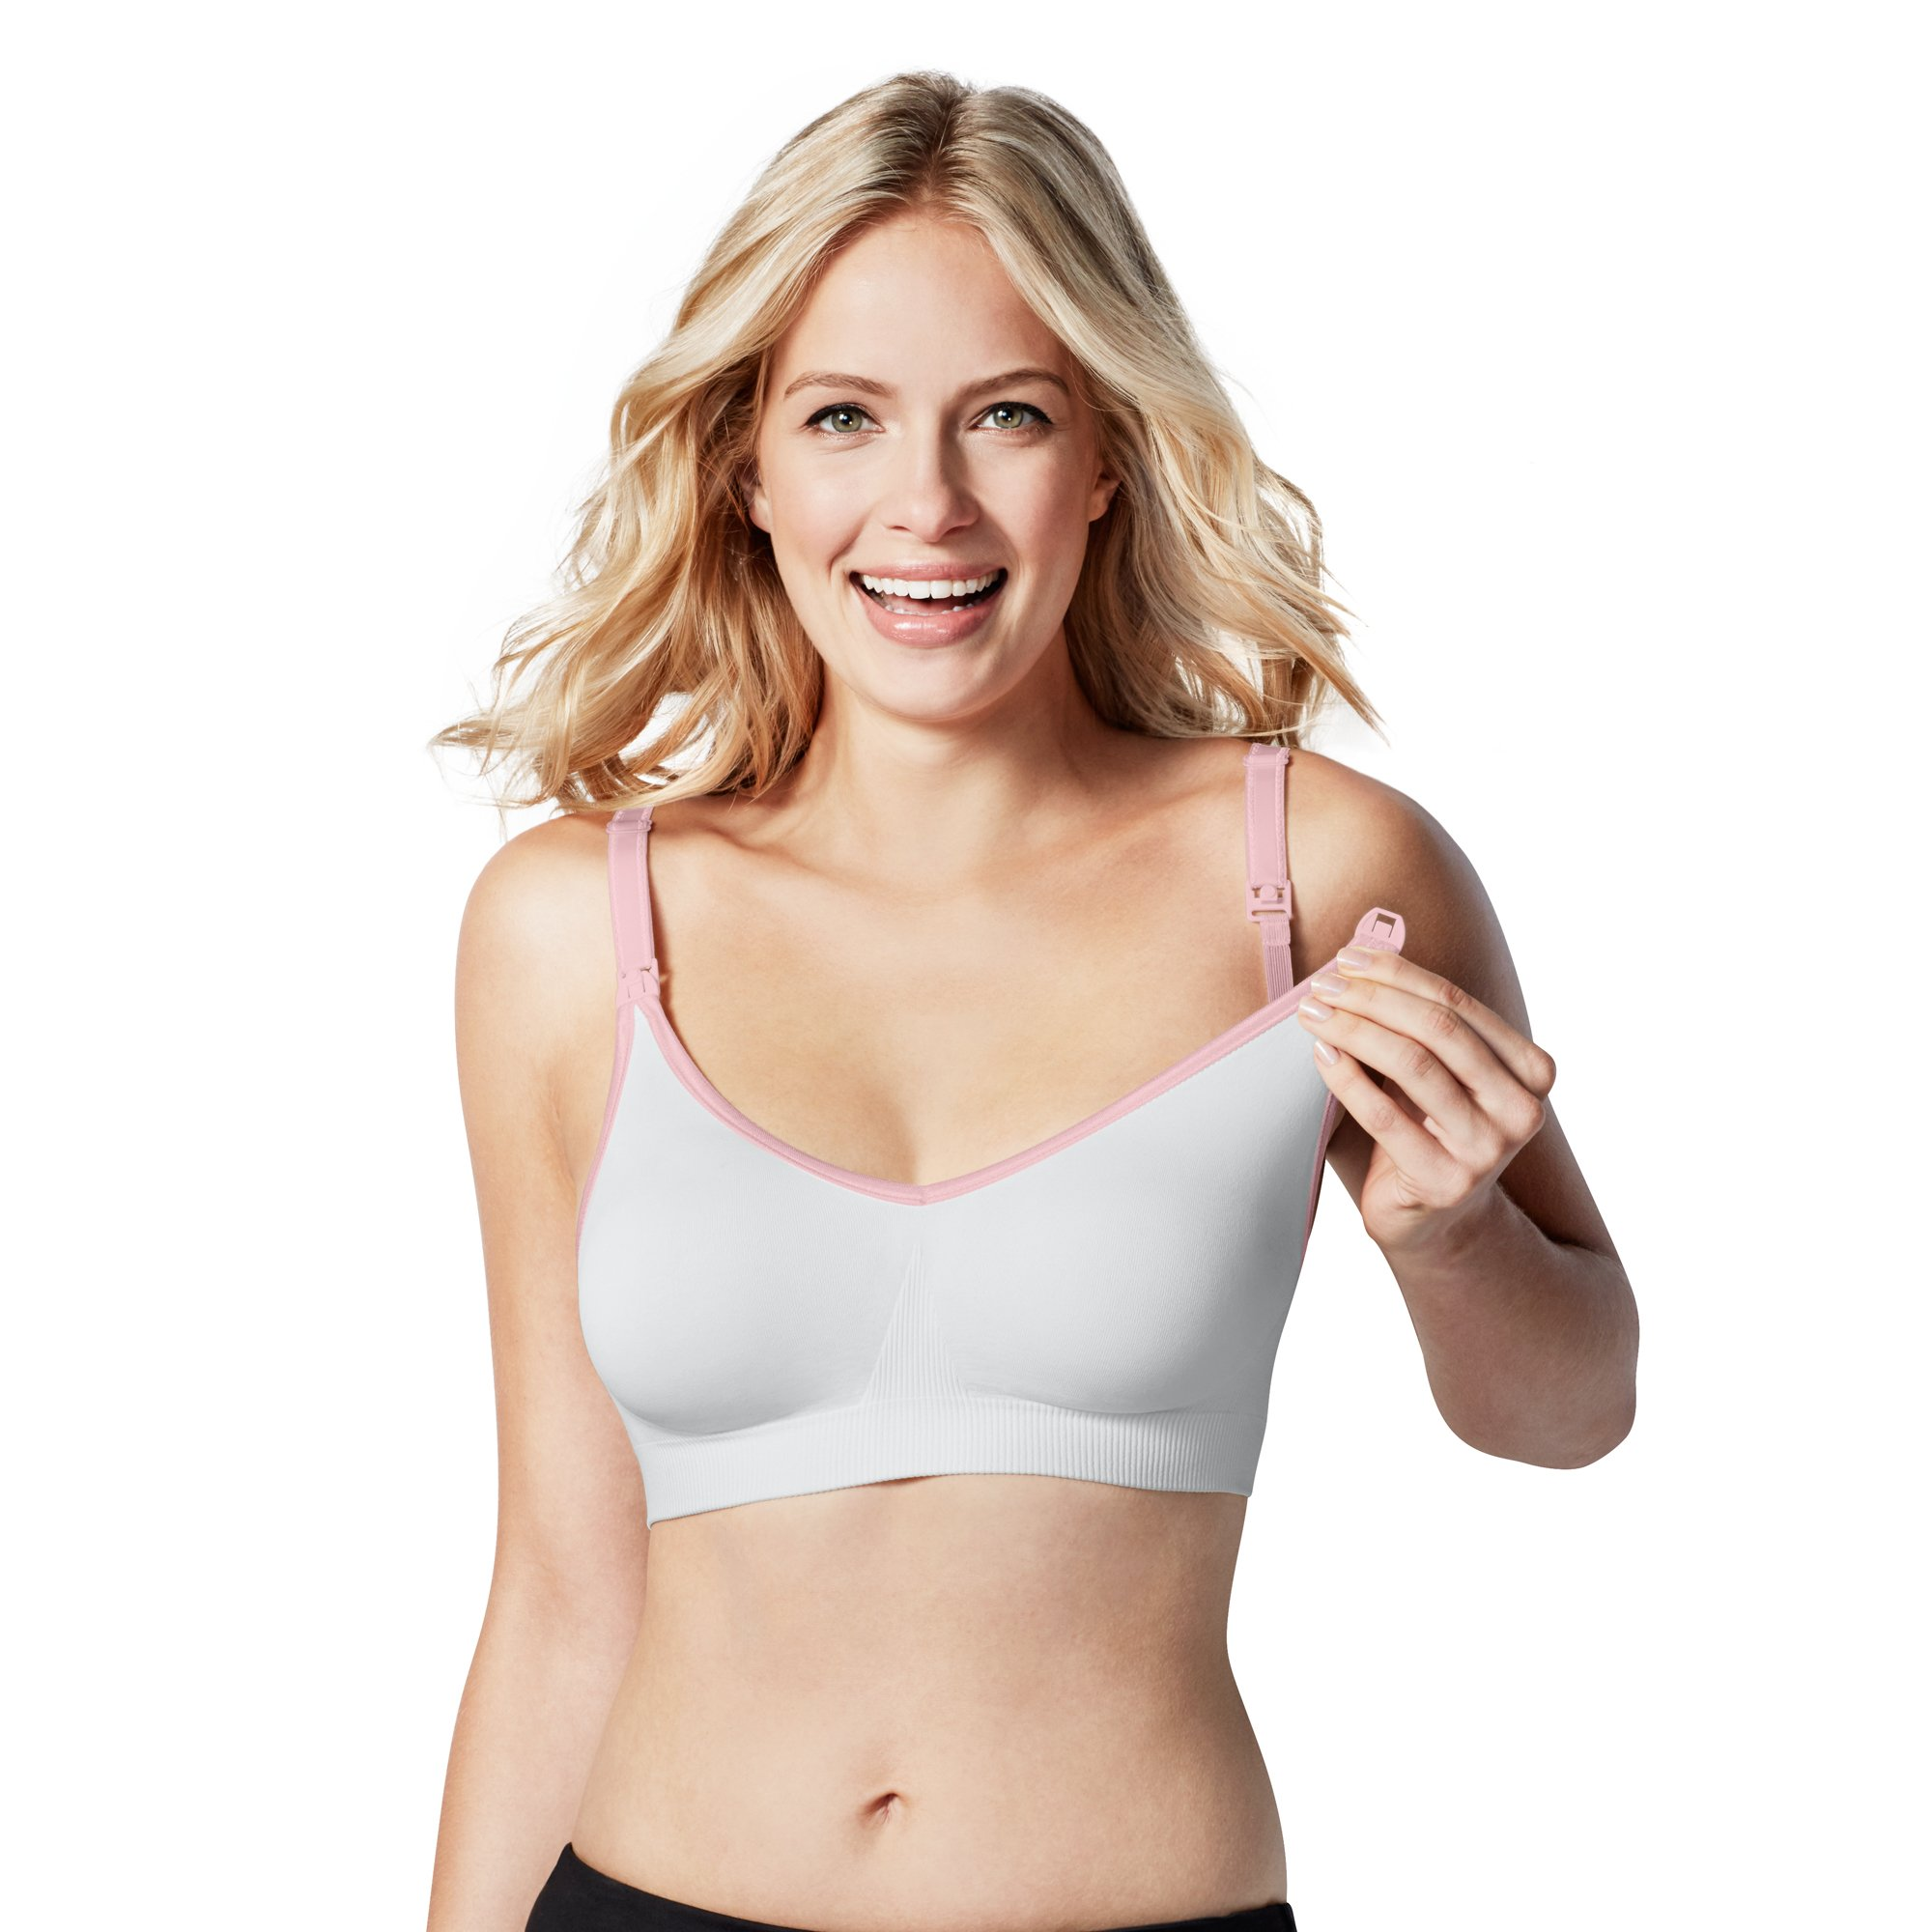 BRAVADO! DESIGNS Body Silk Seamless Nursing Bra